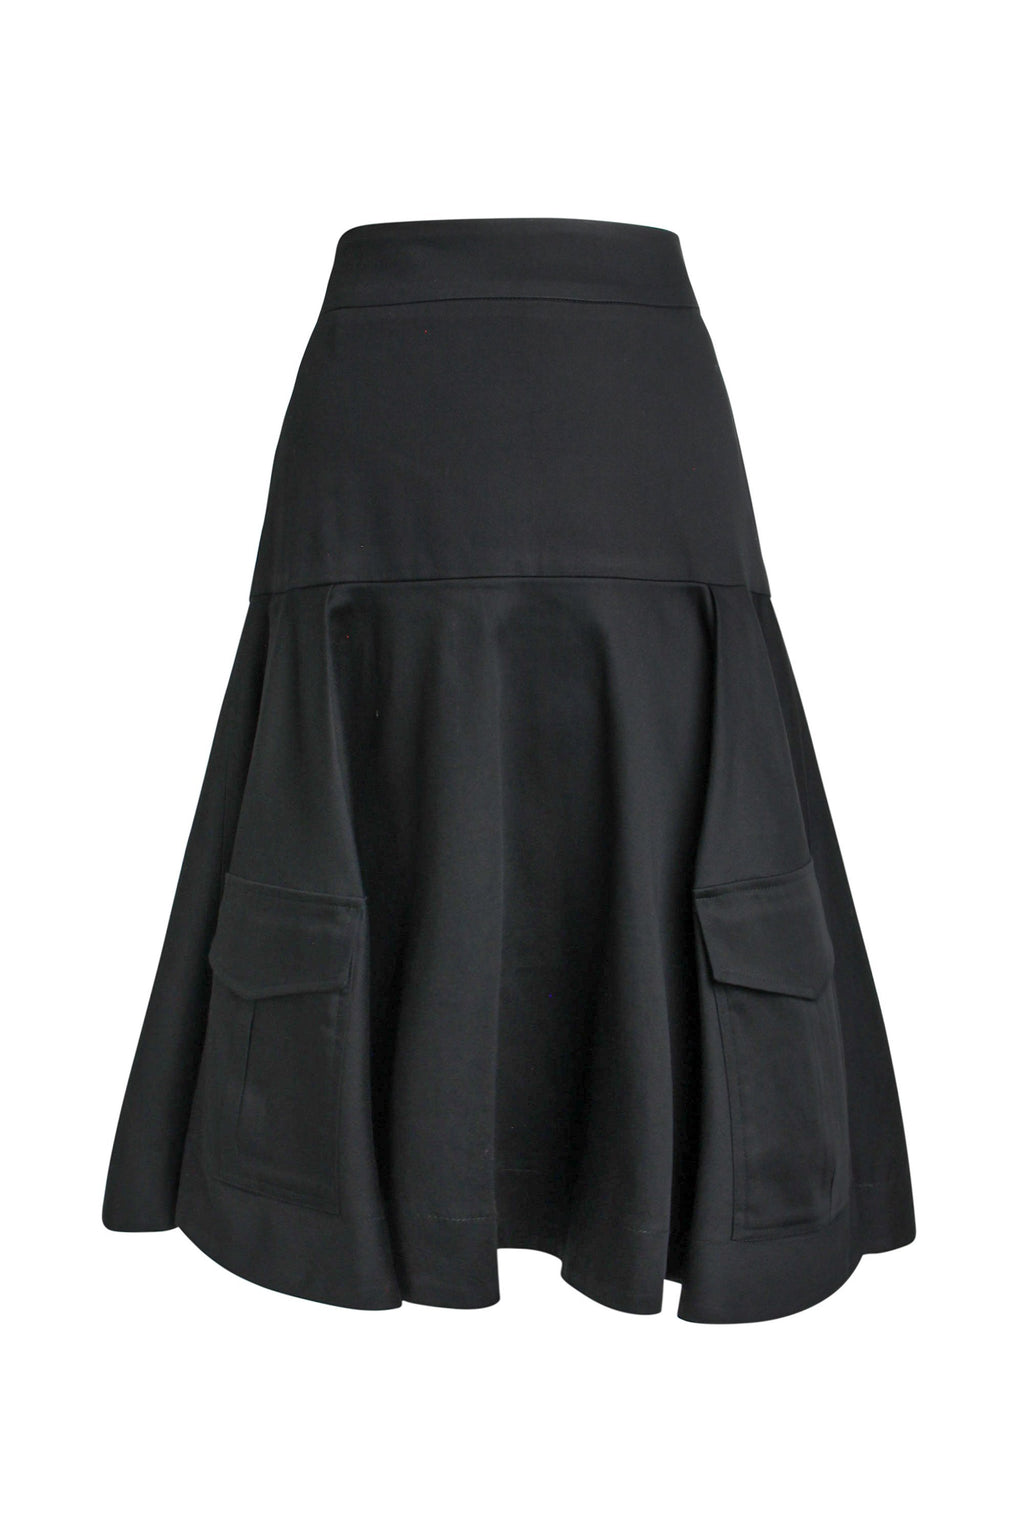 Business Meets Pleasure A-Line Midi Skirt - Black - Tia Dorraine London